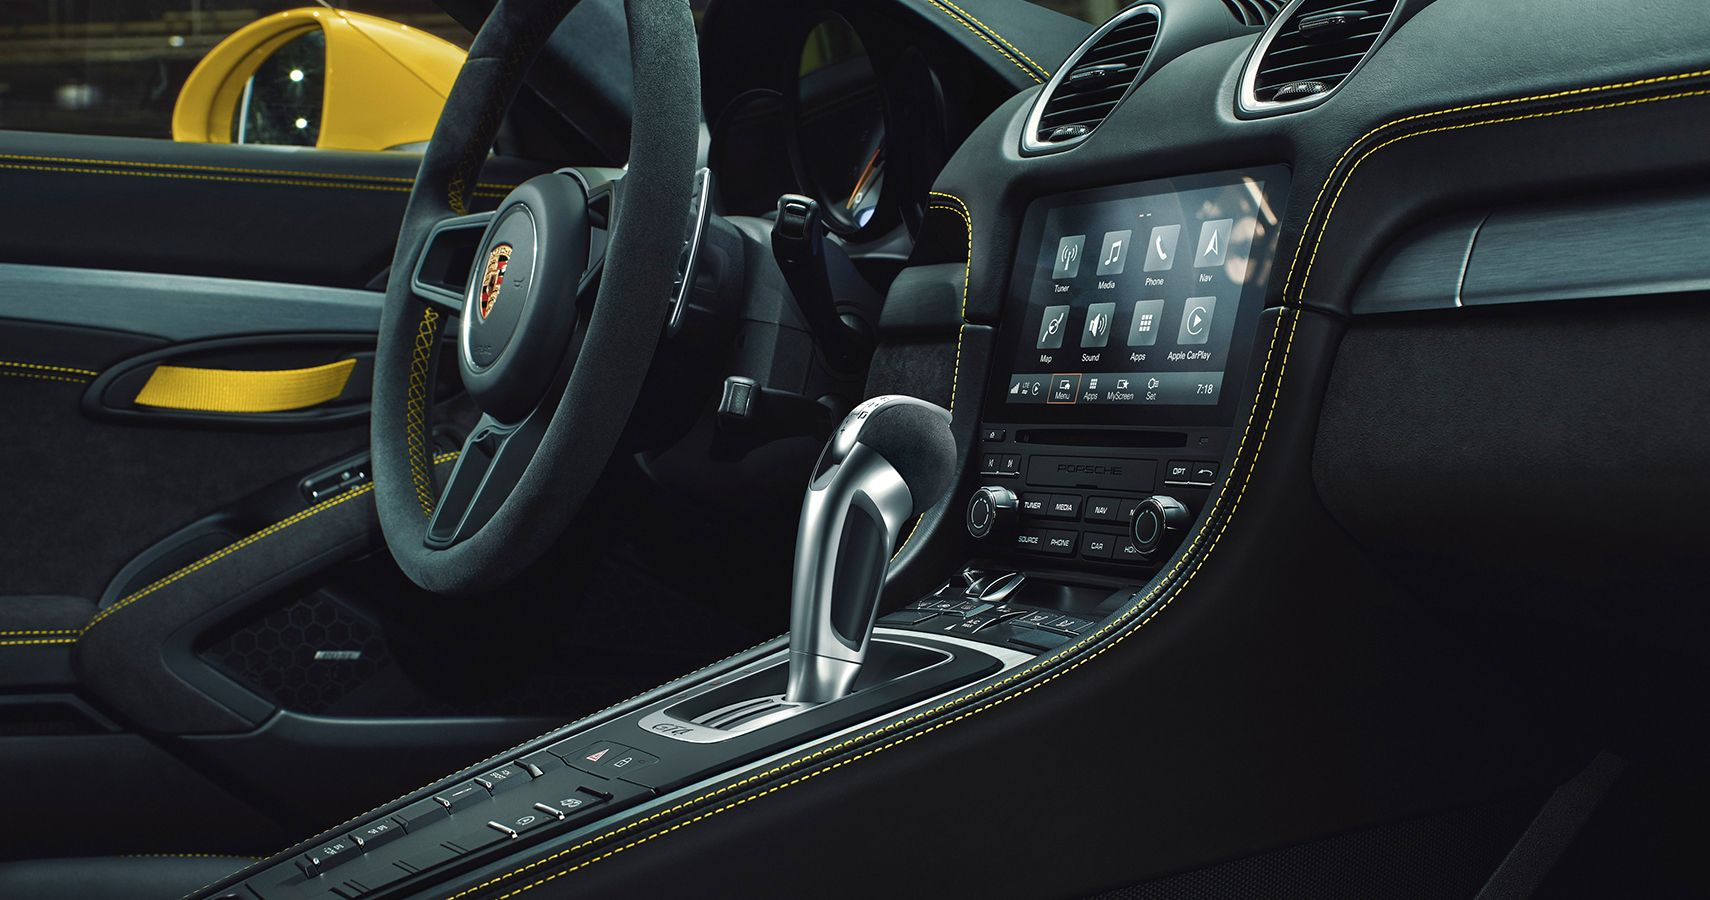 All 2021 Porsche 718 Models Available With PDK Dual Clutch Transmission